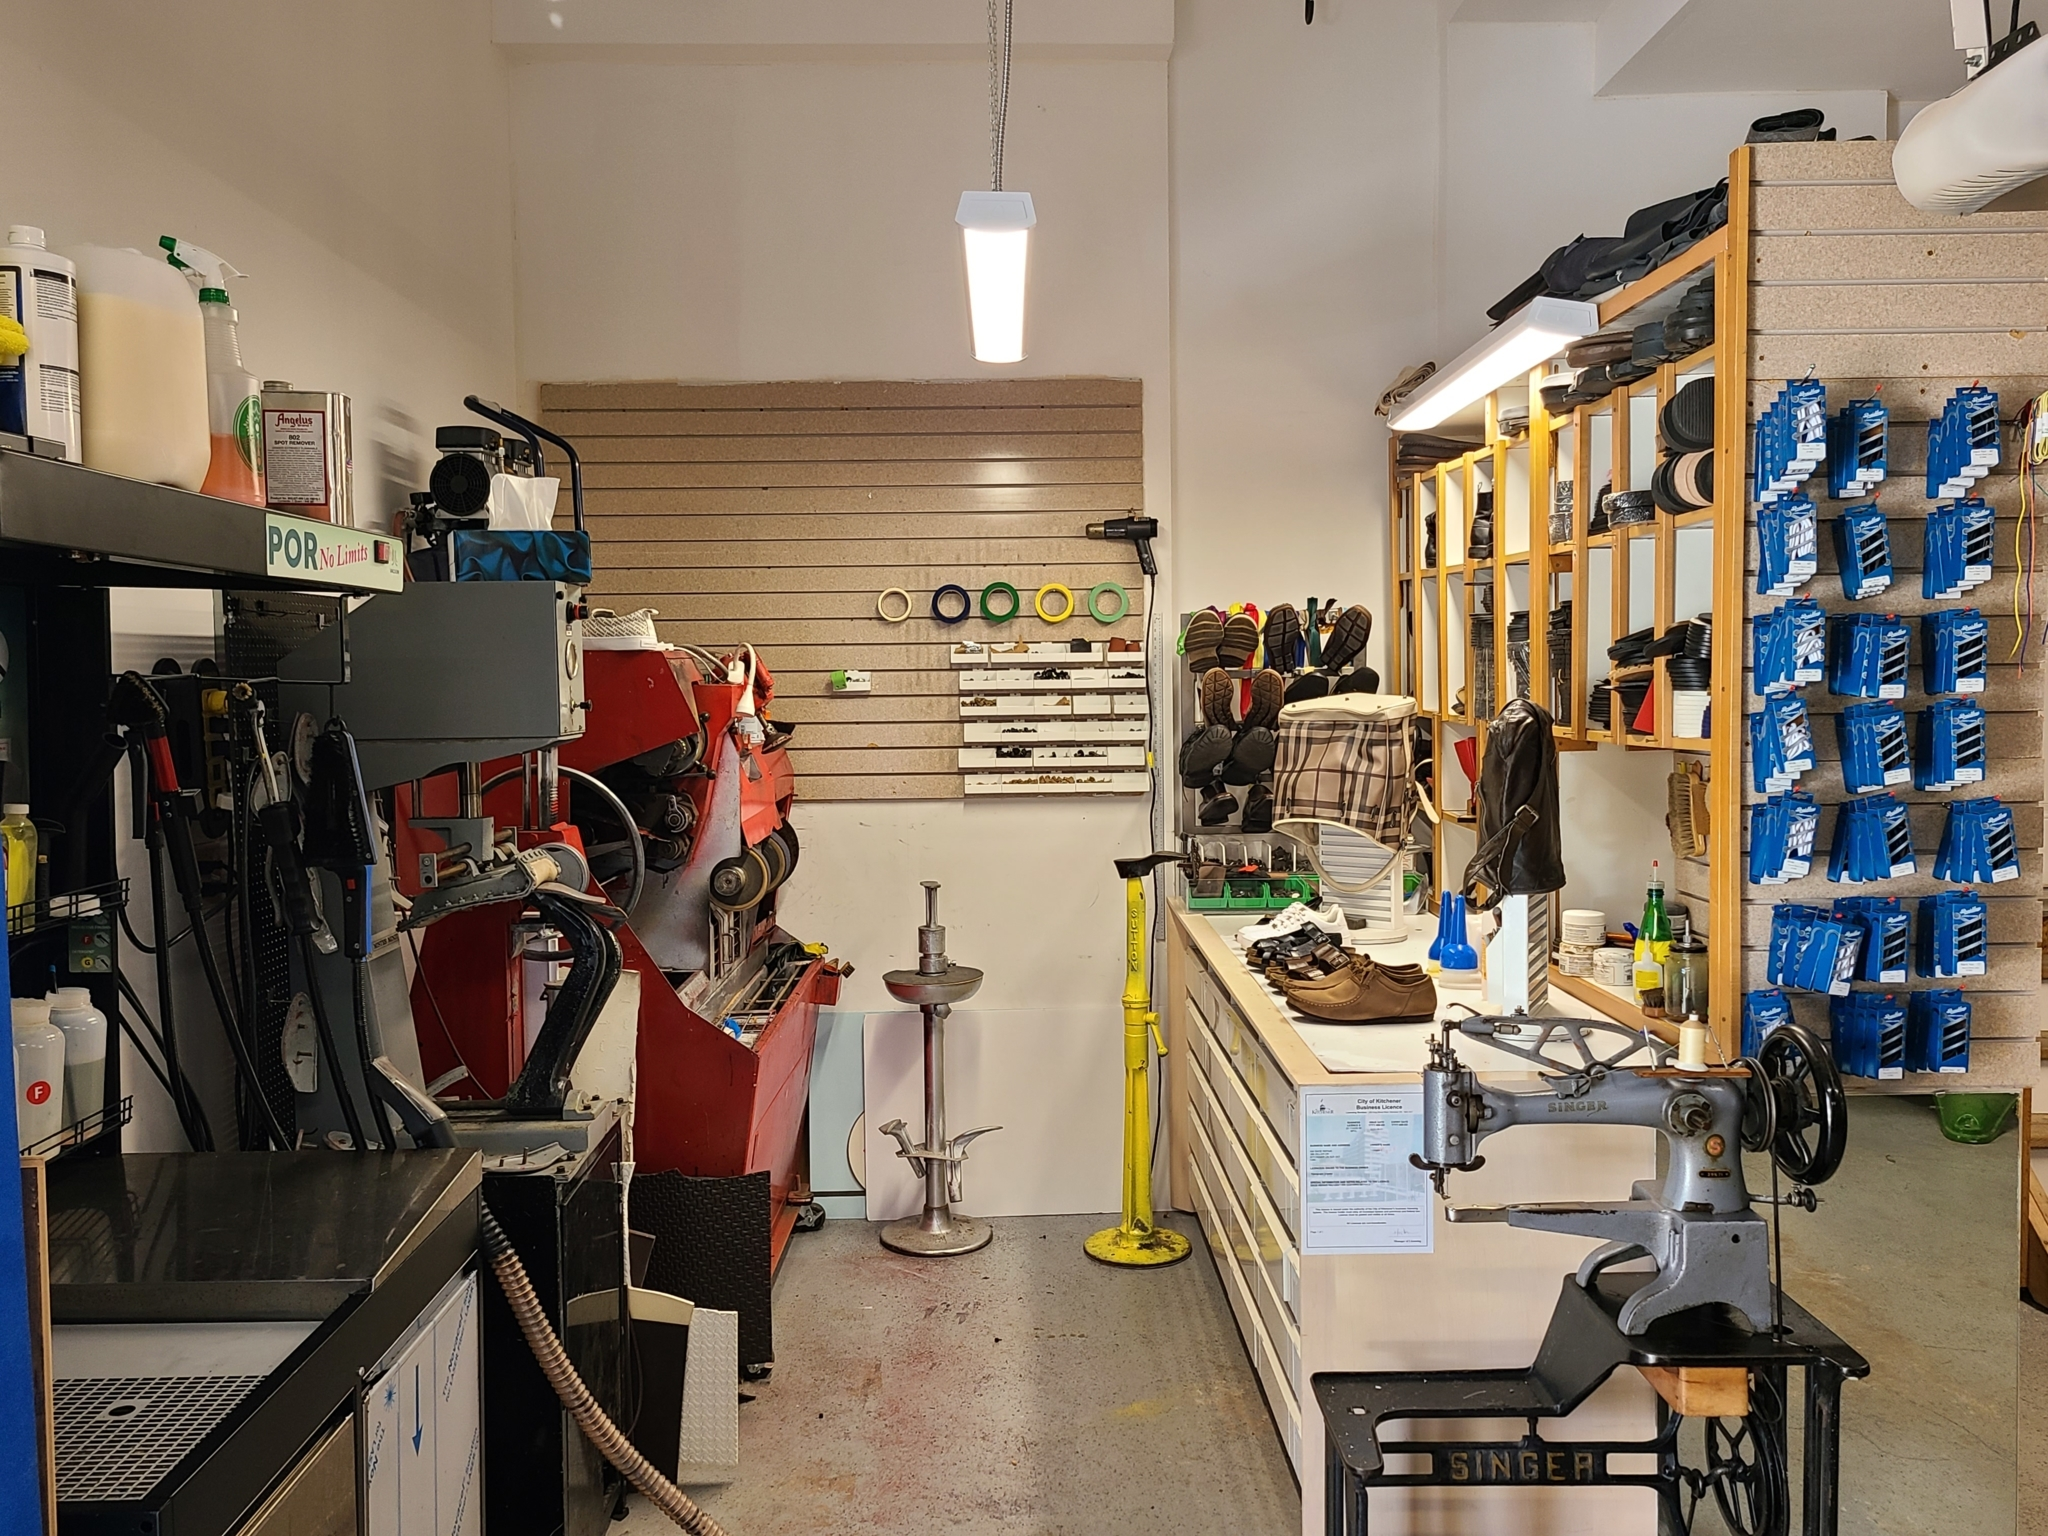 KW Shoe Repair & Sneaker Cleaning Service in Kitchener: ?Repairs on all types of shoes & boots.  ??Always less expensive for you to repair your shoes & boots rather than discard and purchase new ones.  ??We're open Monday to Saturday.